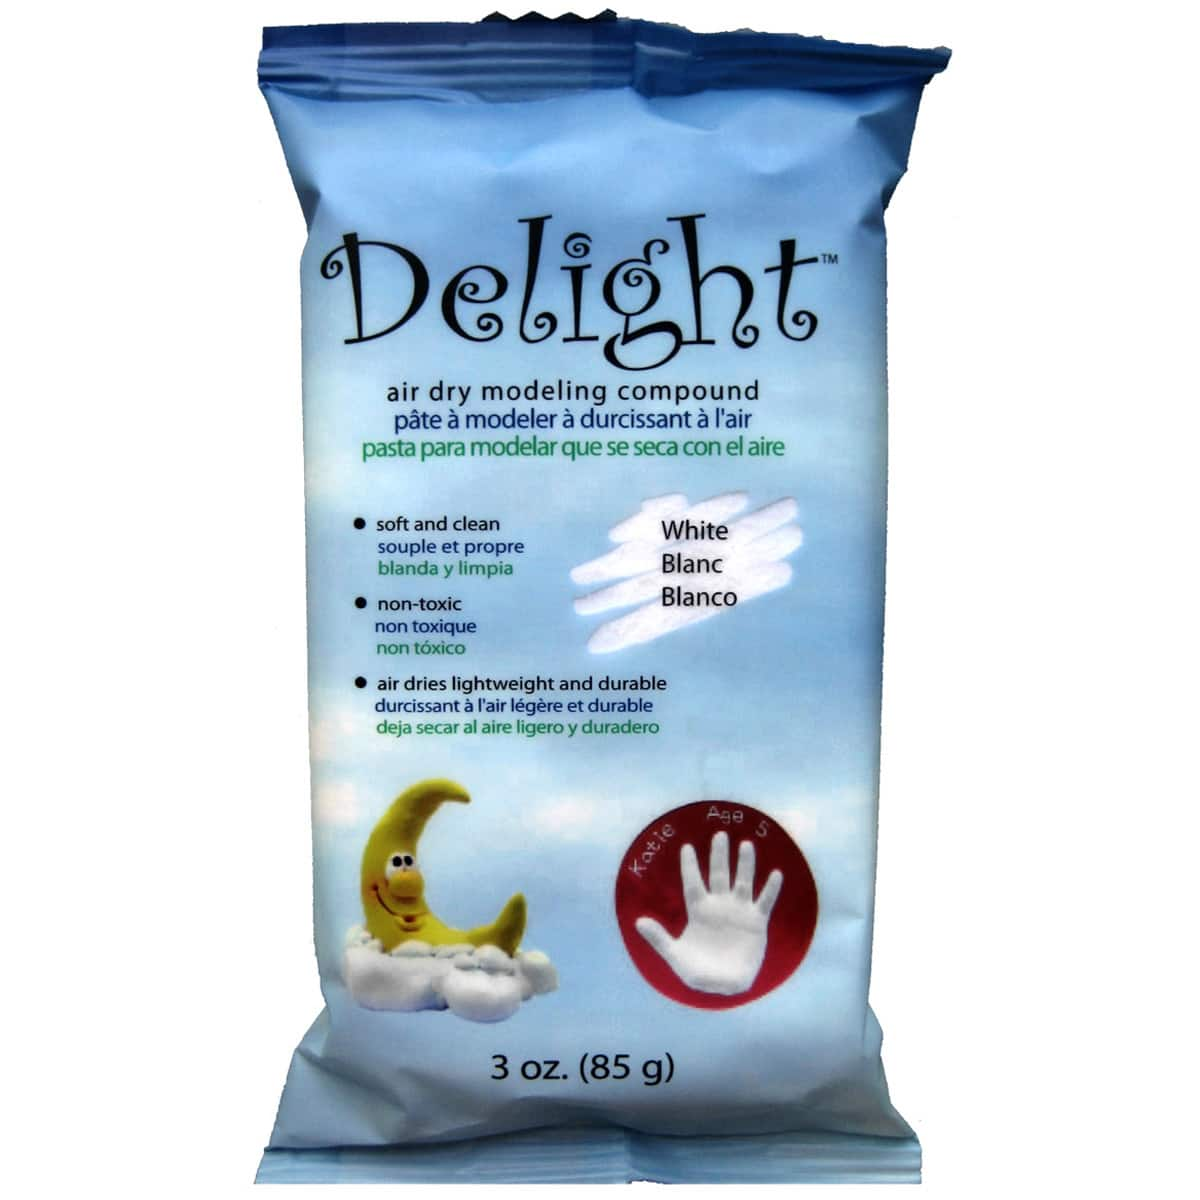 Delight Air Dry Modeling Compound 3oz